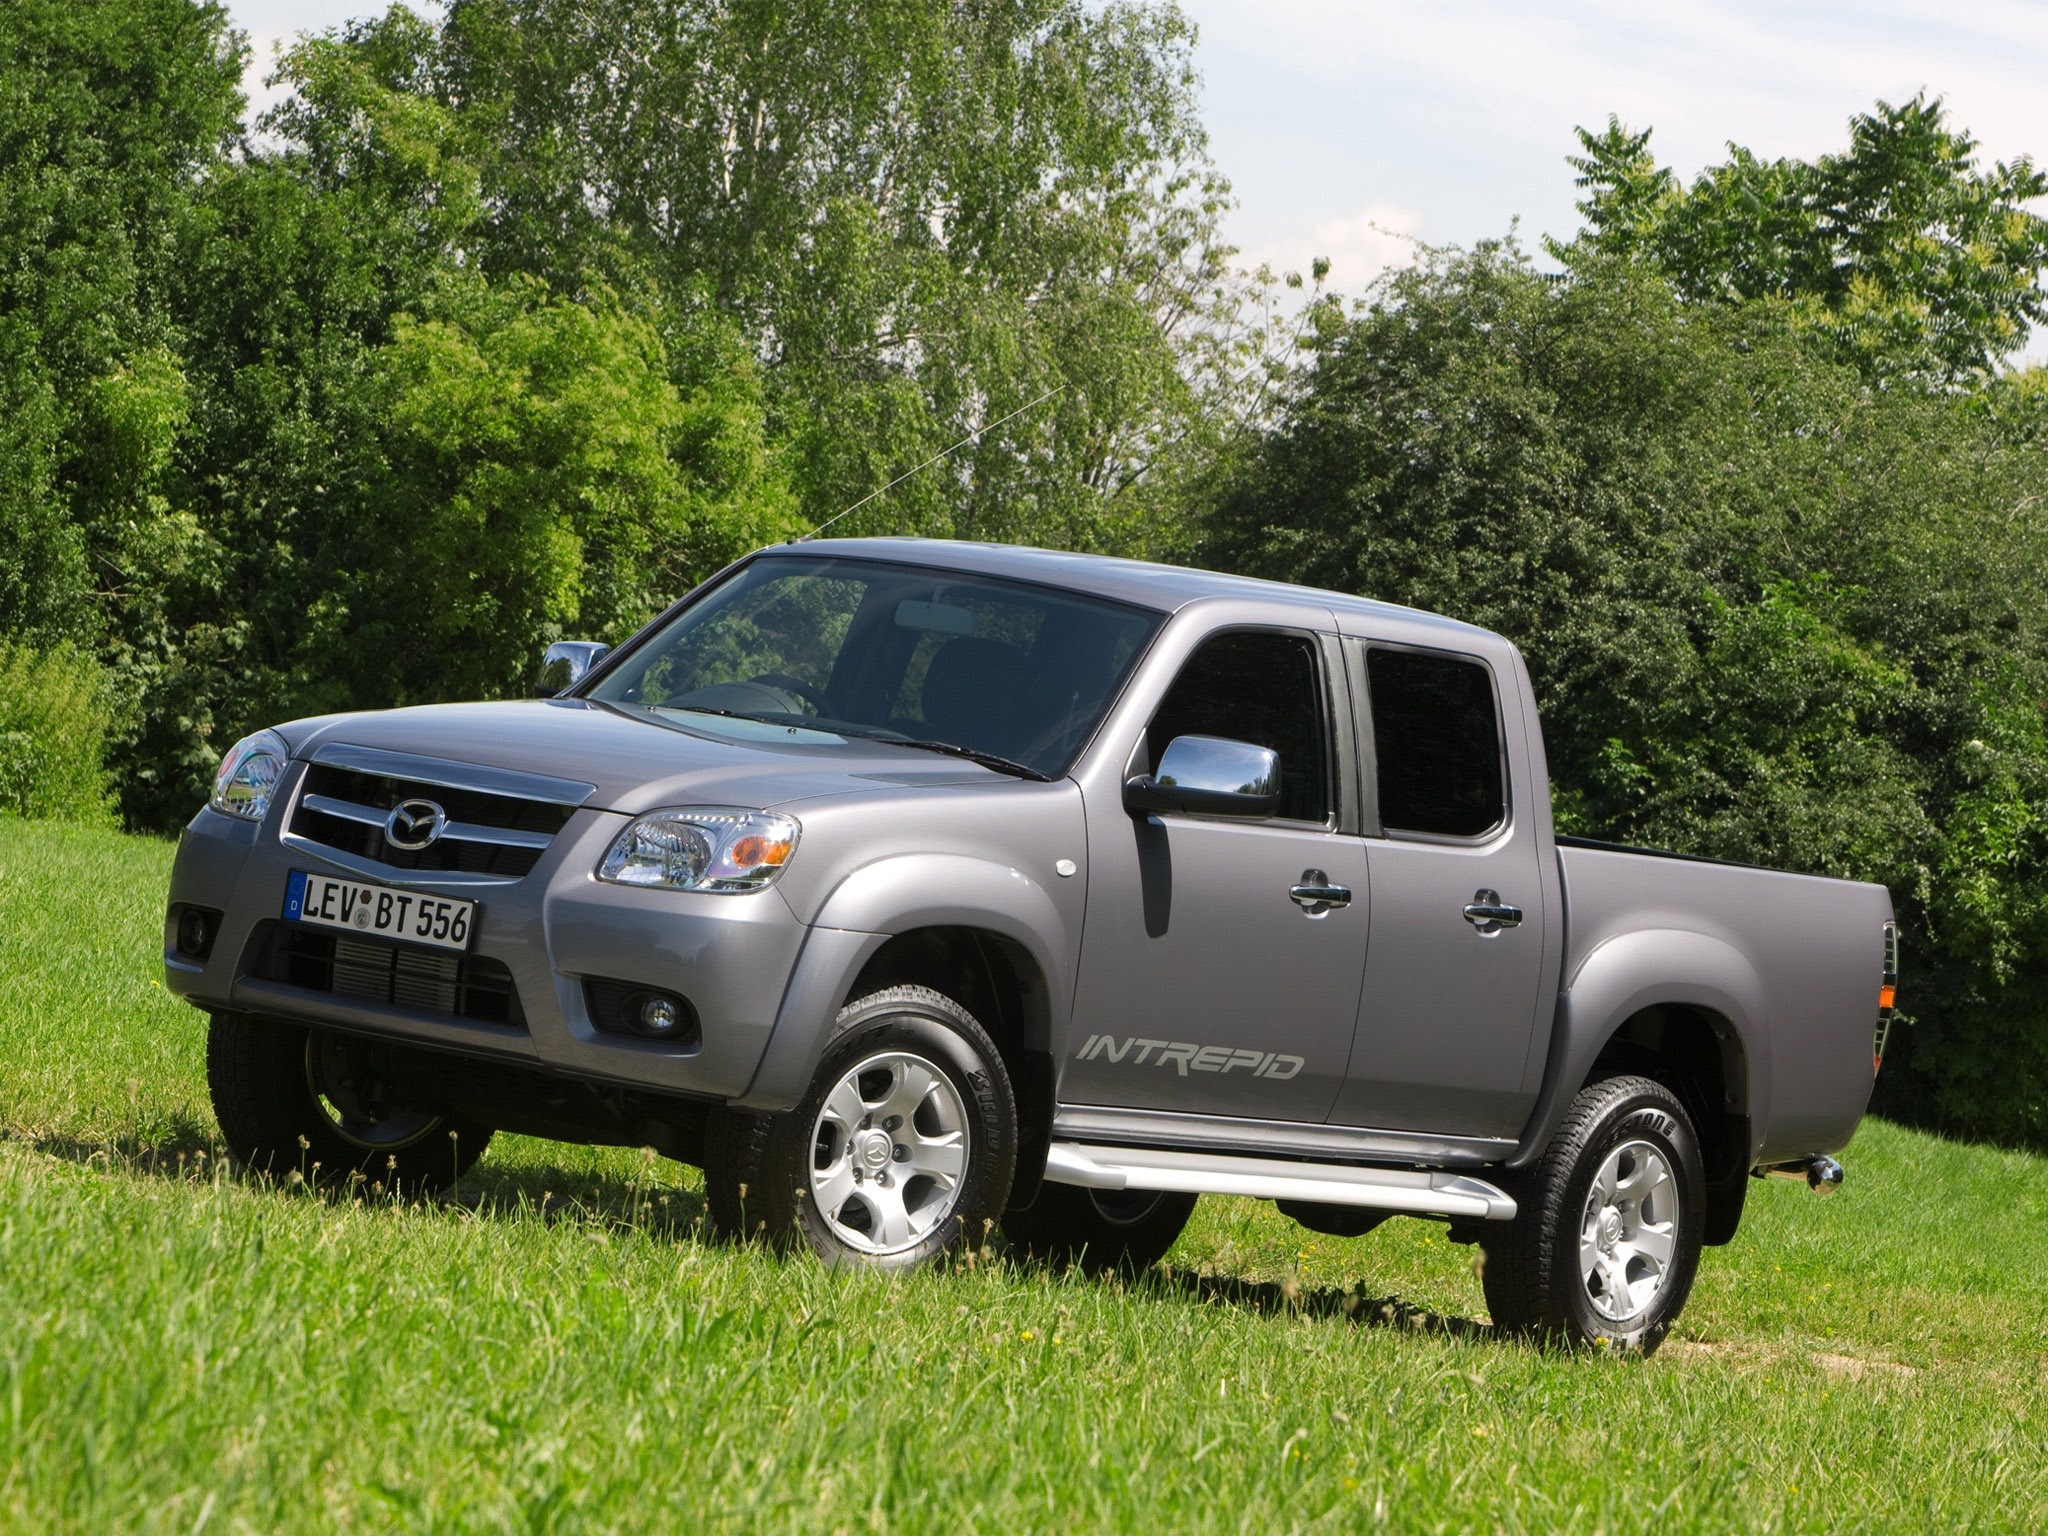 Mazda Bt 50 2008 Tuning >> Mazda BT-50 Double Cab UK 2008 Mazda BT-50 Double Cab UK 2008 Photo 02 – Car in pictures - car ...